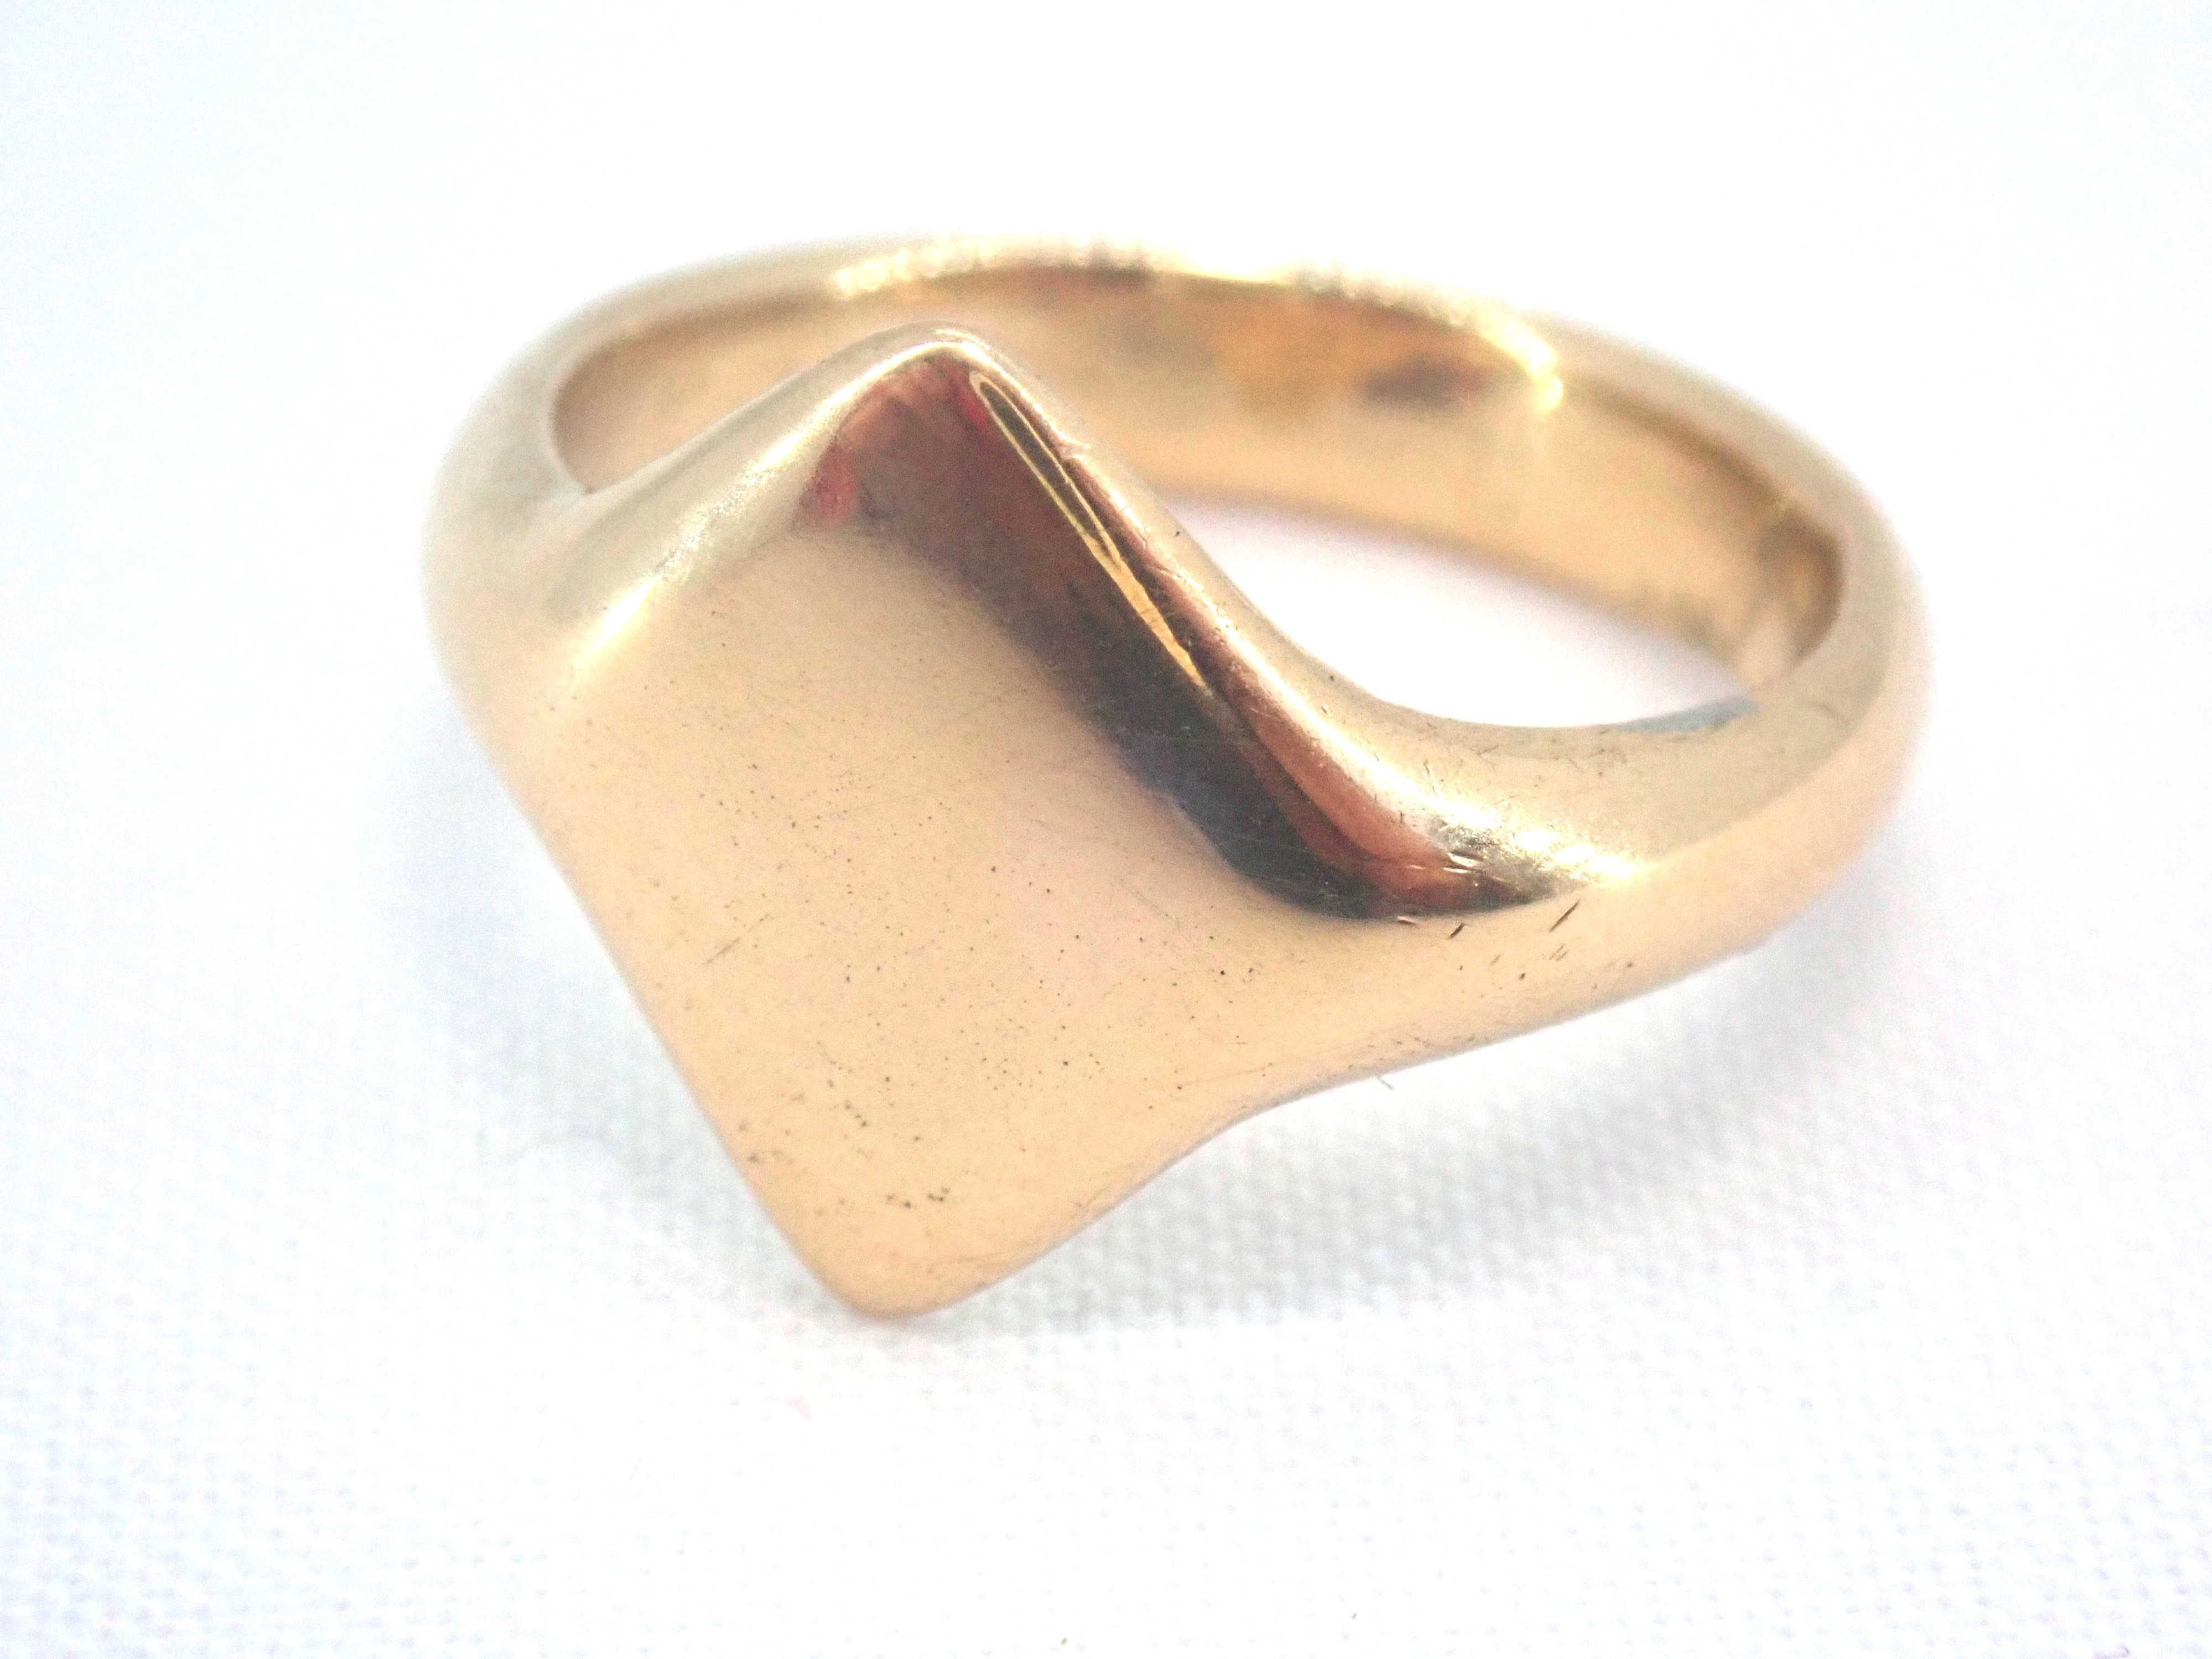 AZZ00727 1 - Vintage!! Solid 18 carat Gold Diamond Shaped Signet Ring - Size M - 5.3gms #002